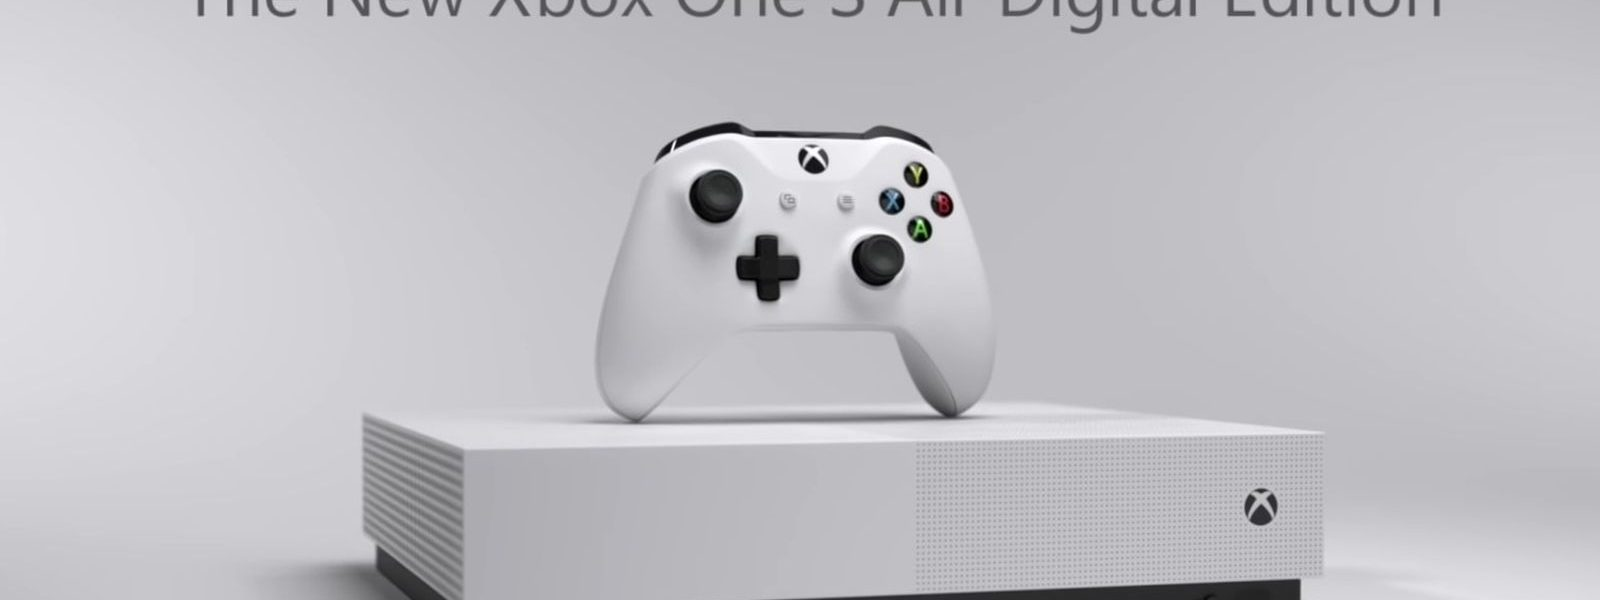 Xbox One SAD Edition